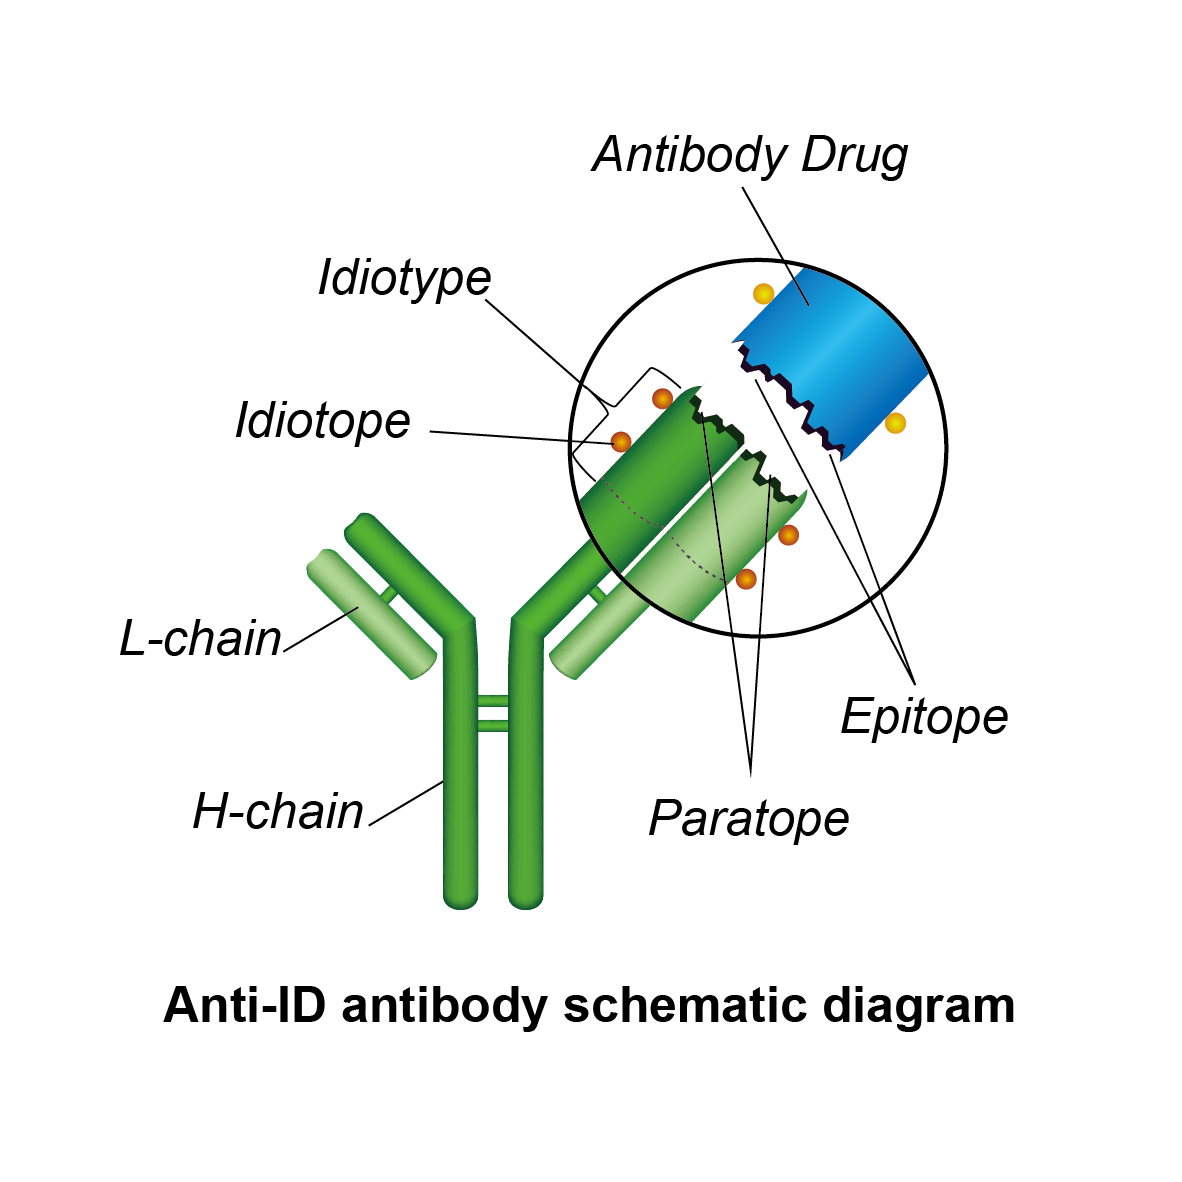 A The Idiotypic Network An Antigen Ag Is Recognized By: Anti-idiotype Antibody Service